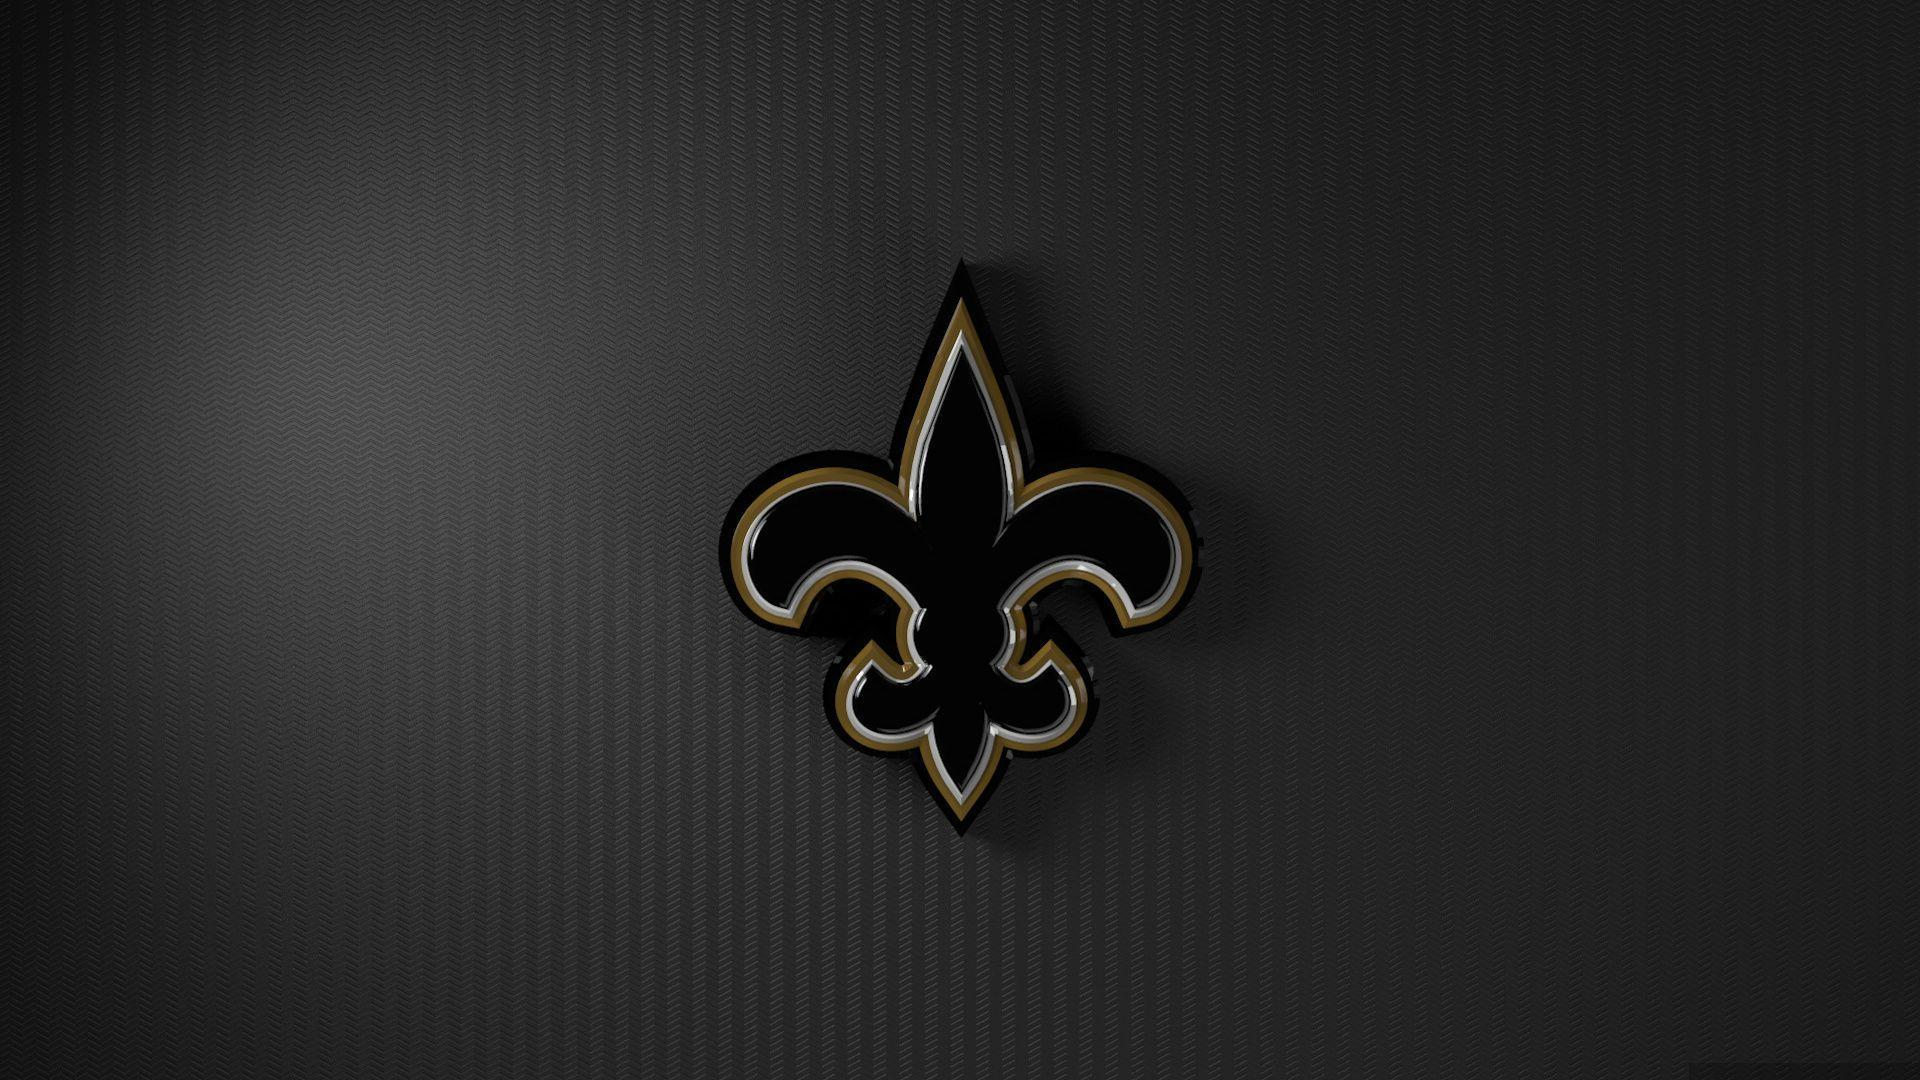 1920x1080 Nfl, Sports, American Football, New Orleans Saints